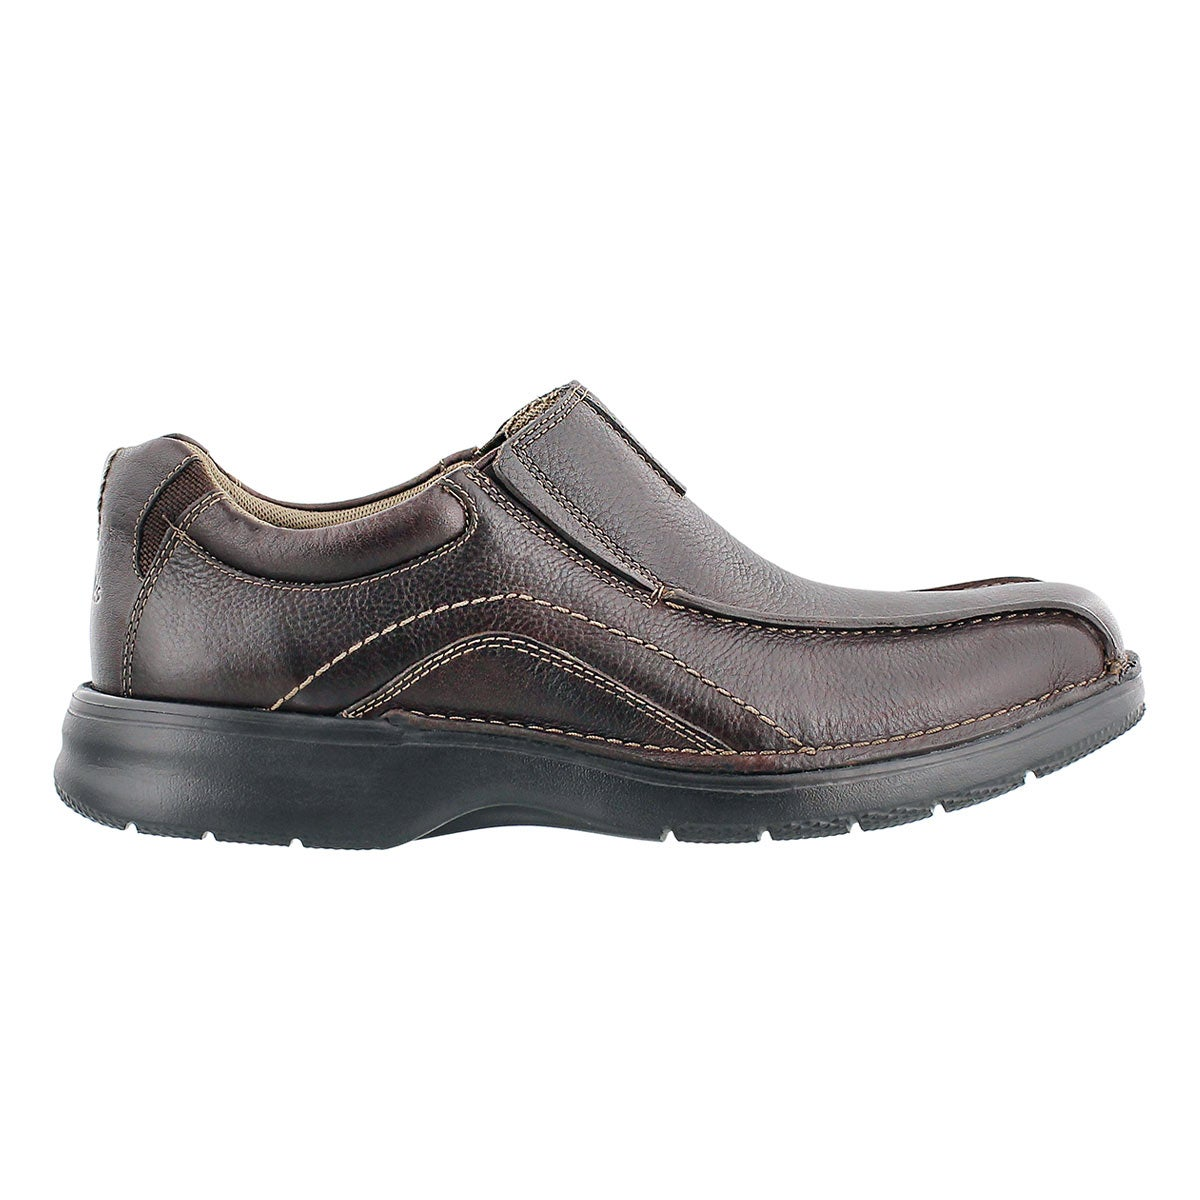 Mns Pickett brown oily casual slip on